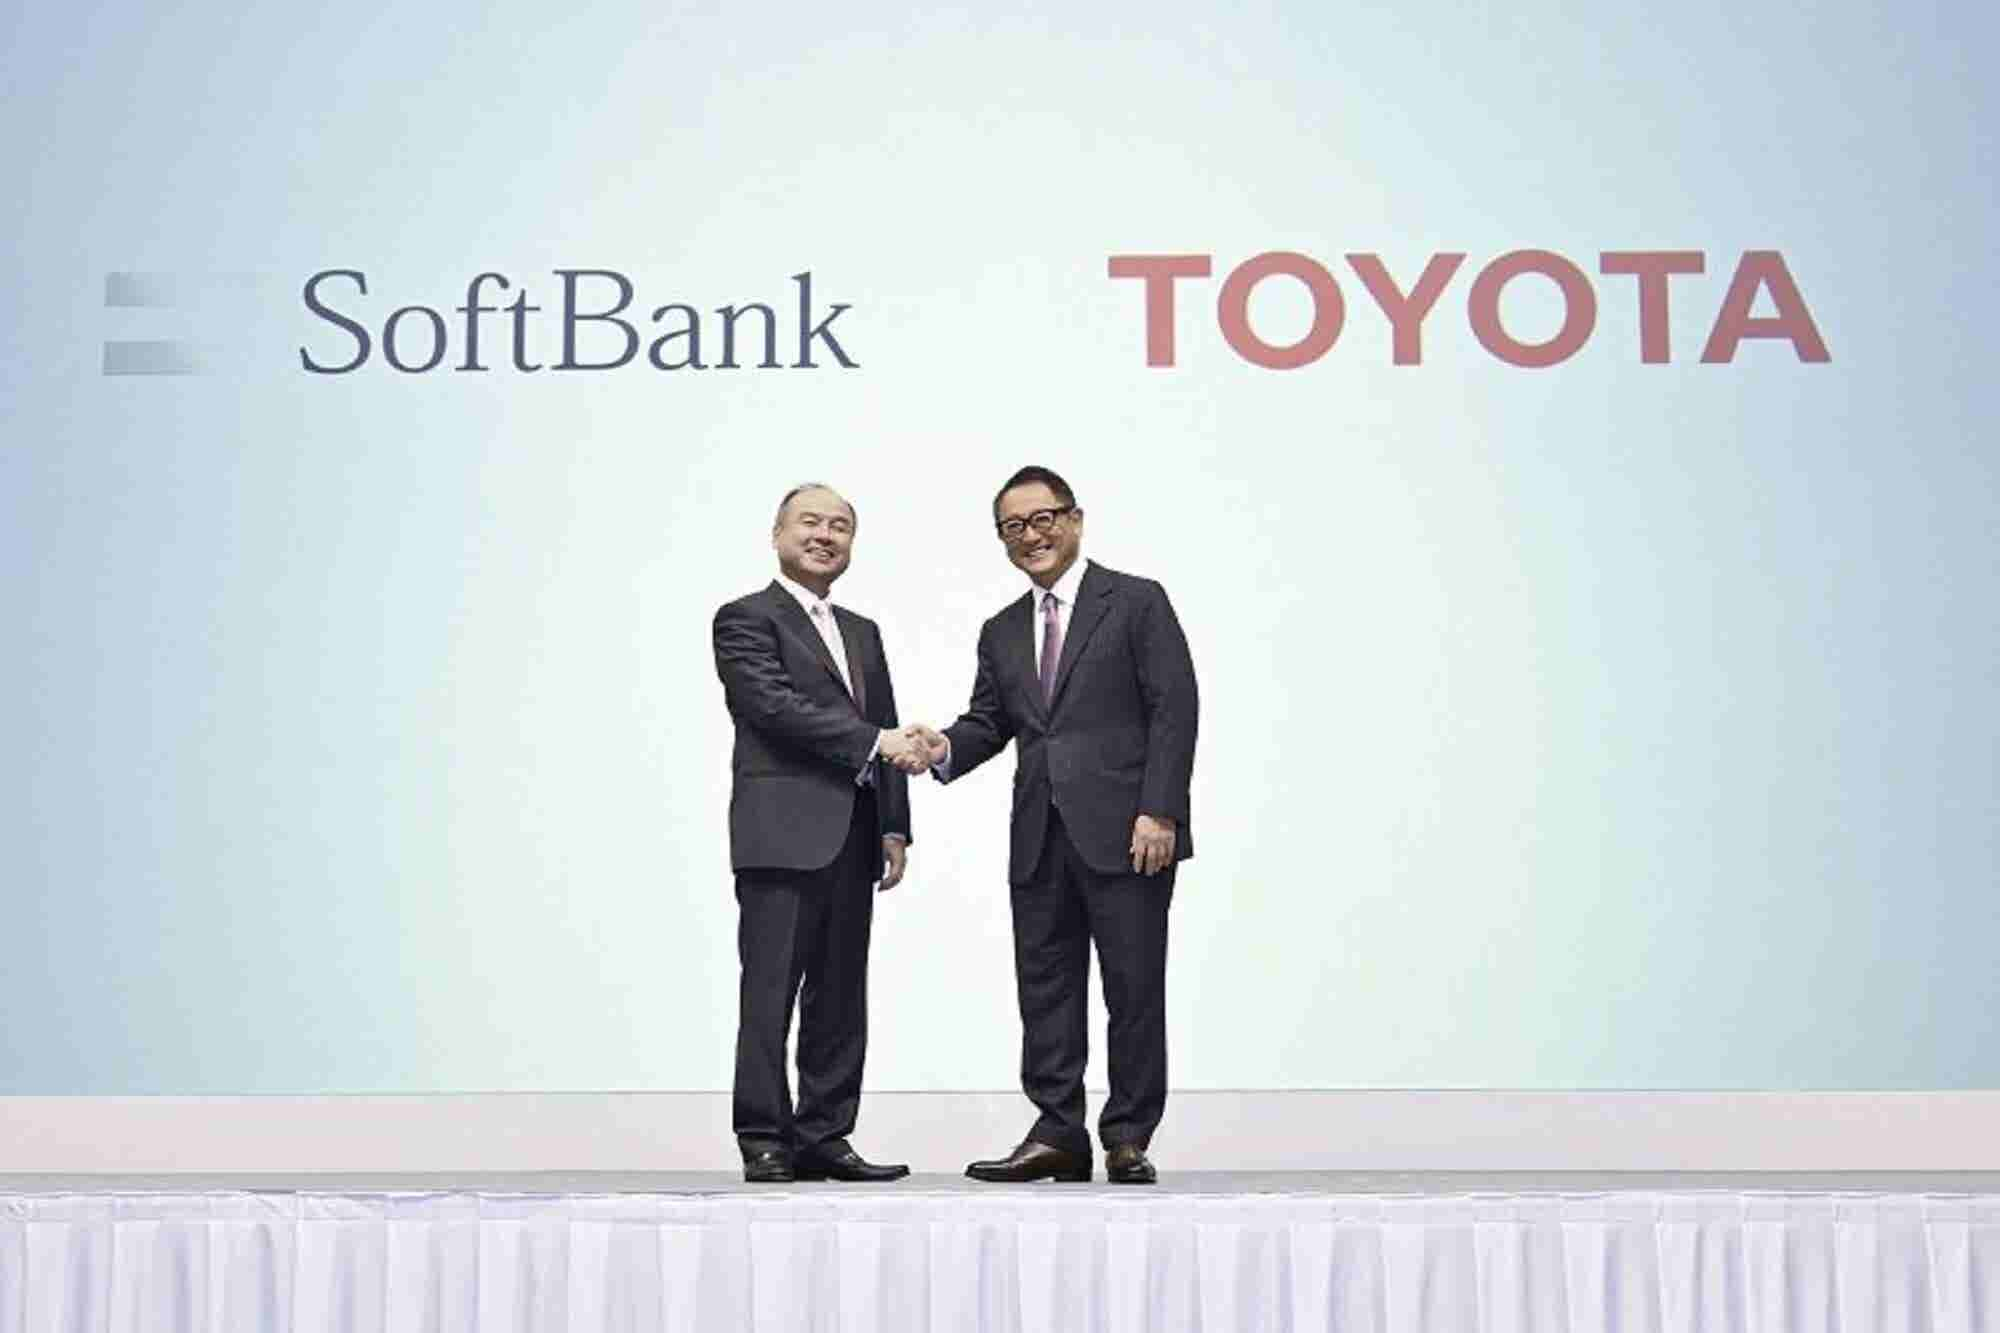 Toyota, SoftBank Partner to Drive Safer Mobility For Everyone